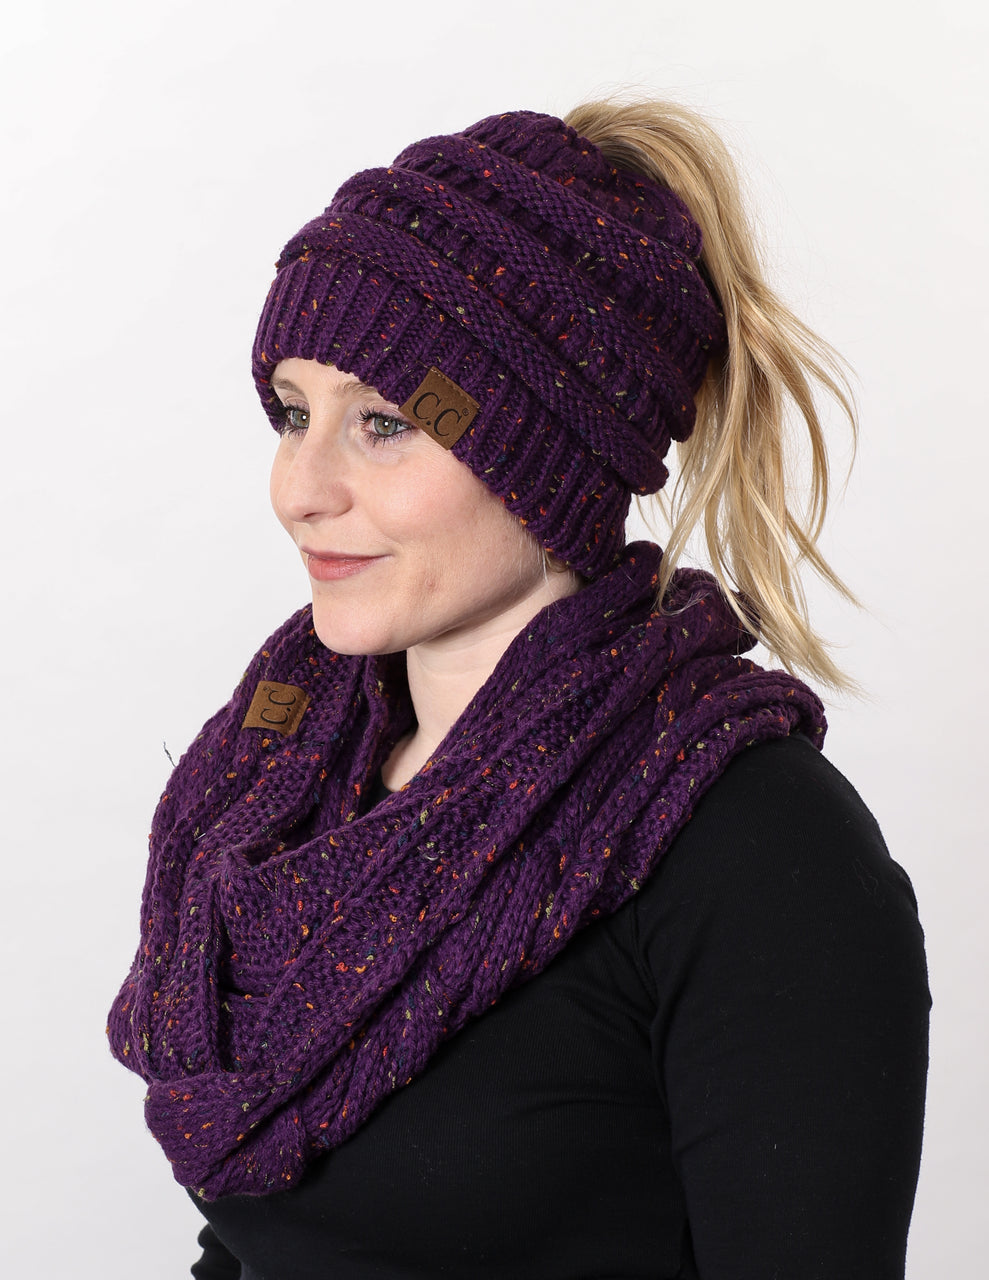 CC Messy Bun BeanieTail Bundled With Matching Infinity Scarf - Confetti Purple